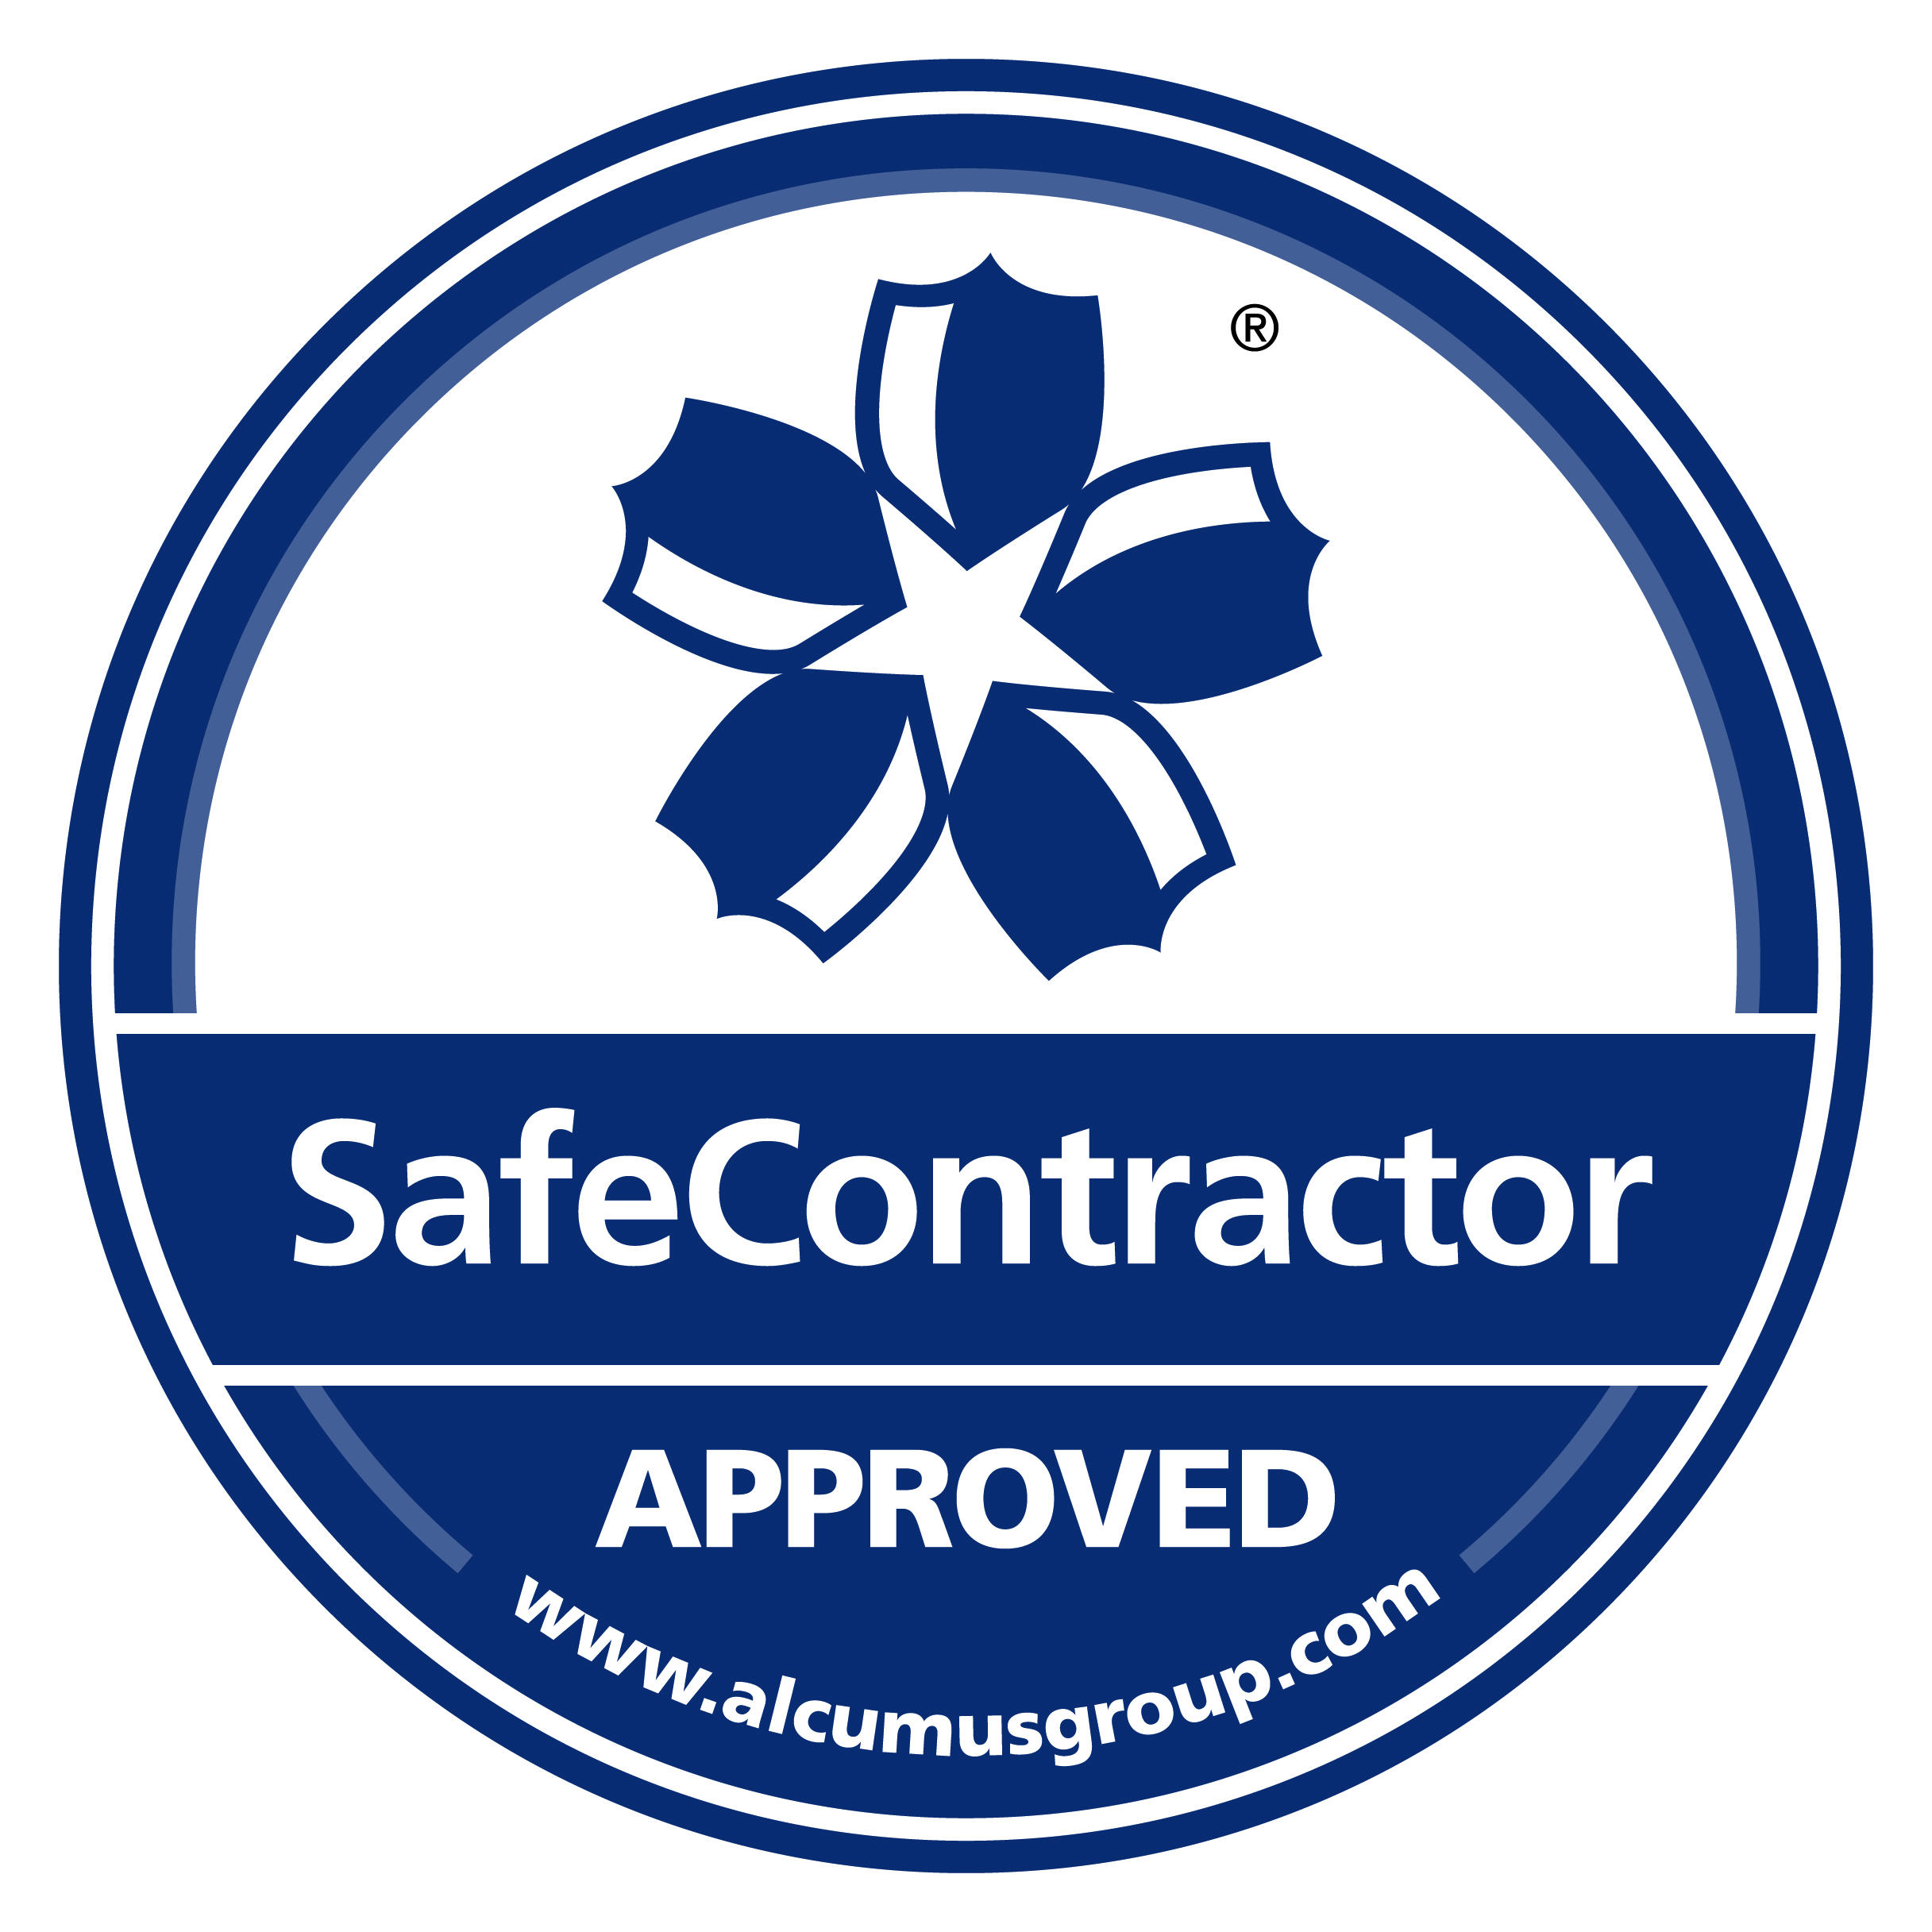 This is the safe contractor logo.